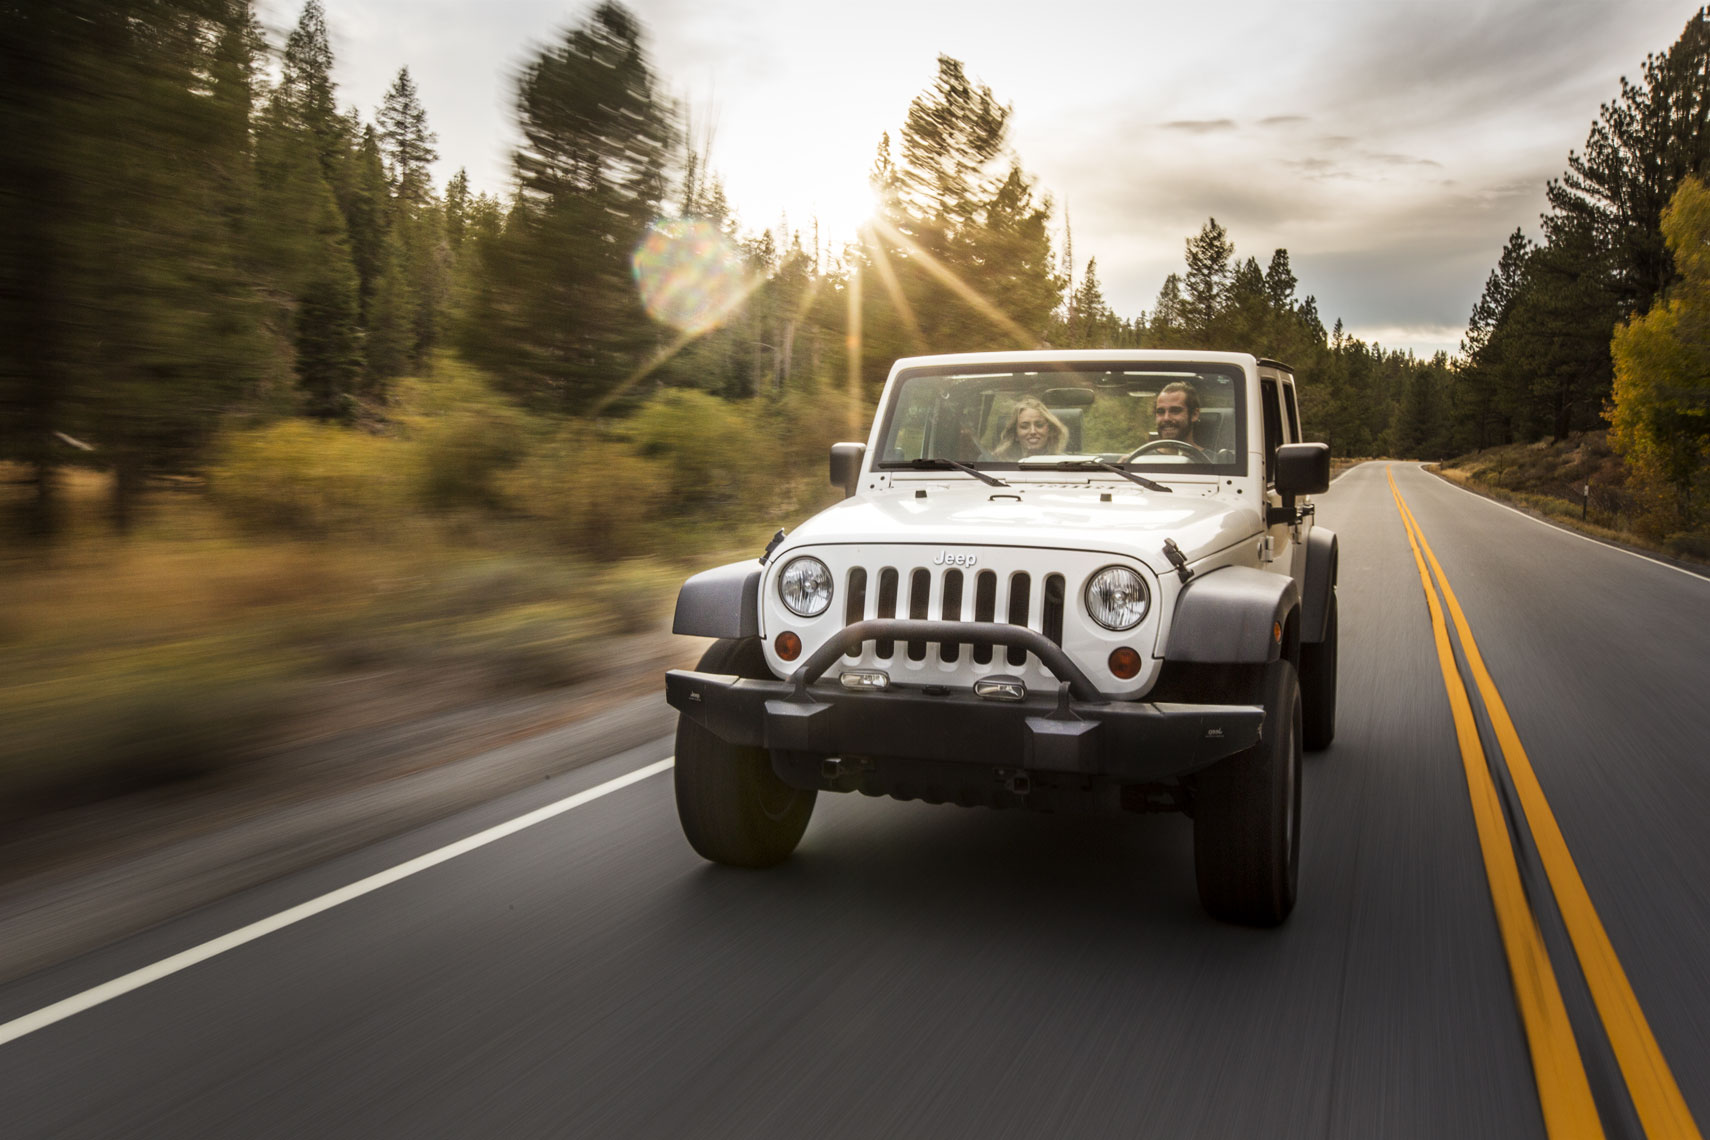 Jeep Wrangler Driving on Road